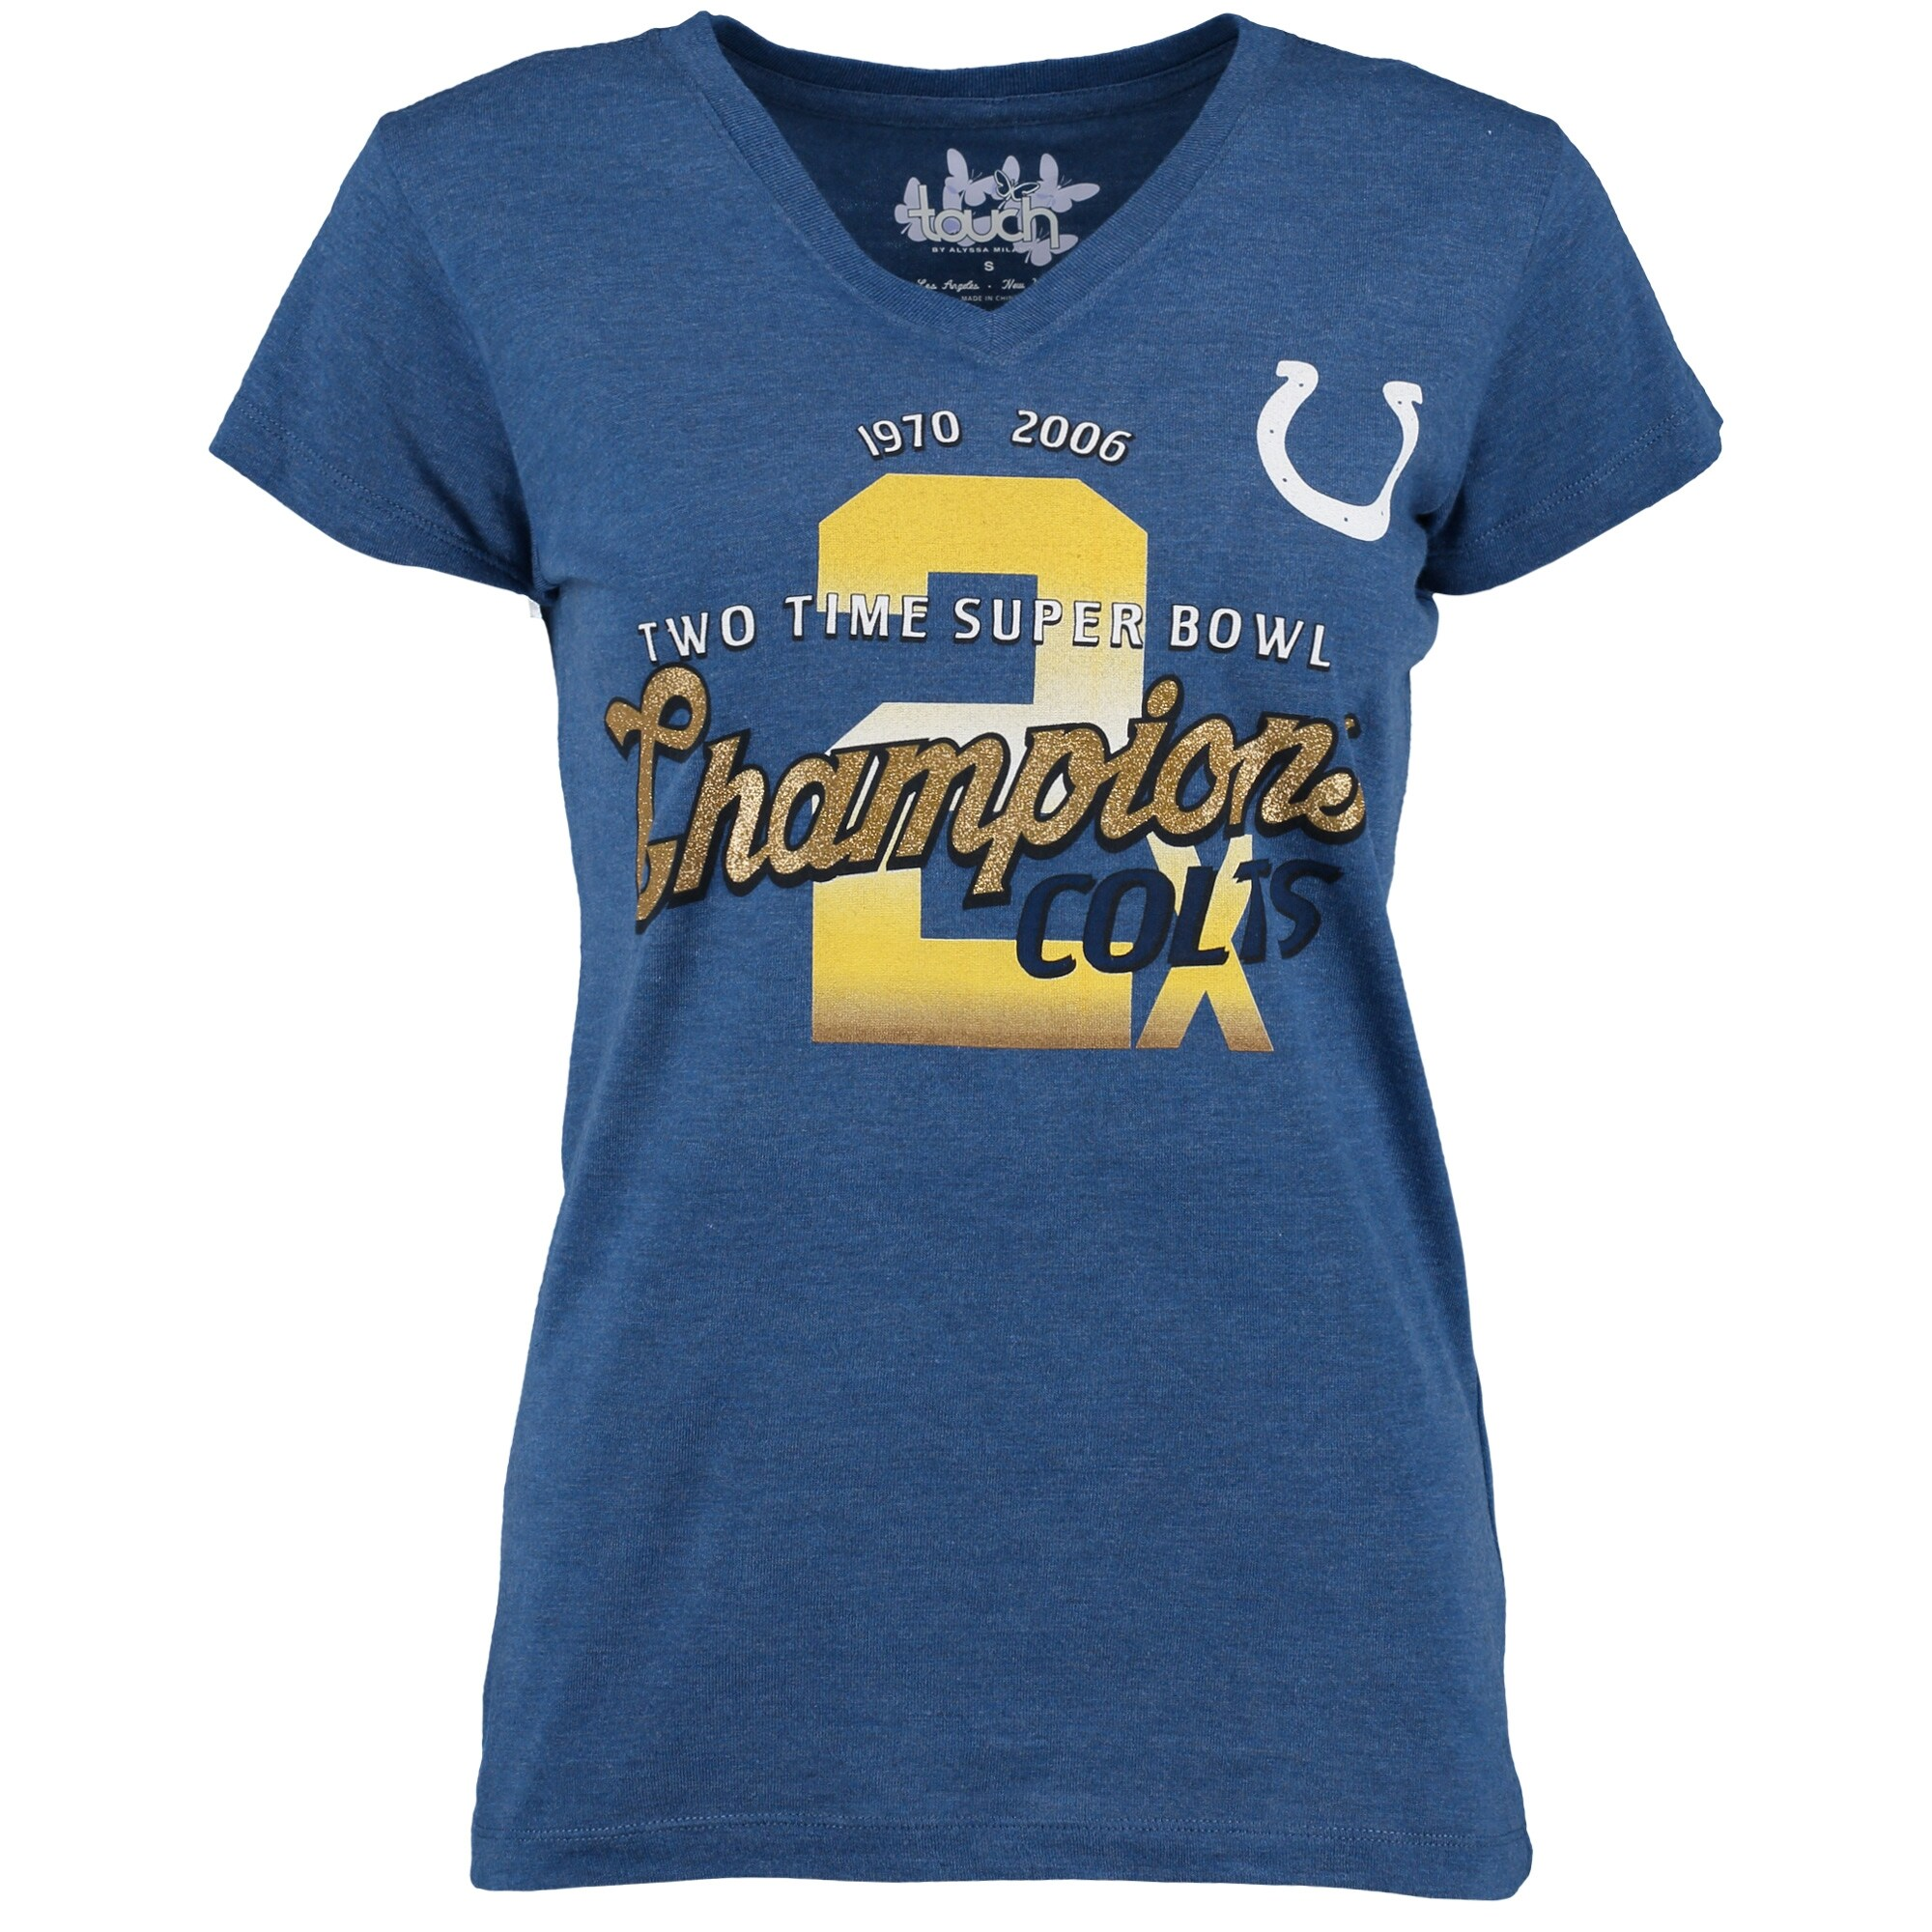 Indianapolis Colts Touch by Alyssa Milano Women's On the Fifty 2-Time Super Bowl Champions Glitter T-Shirt - Royal